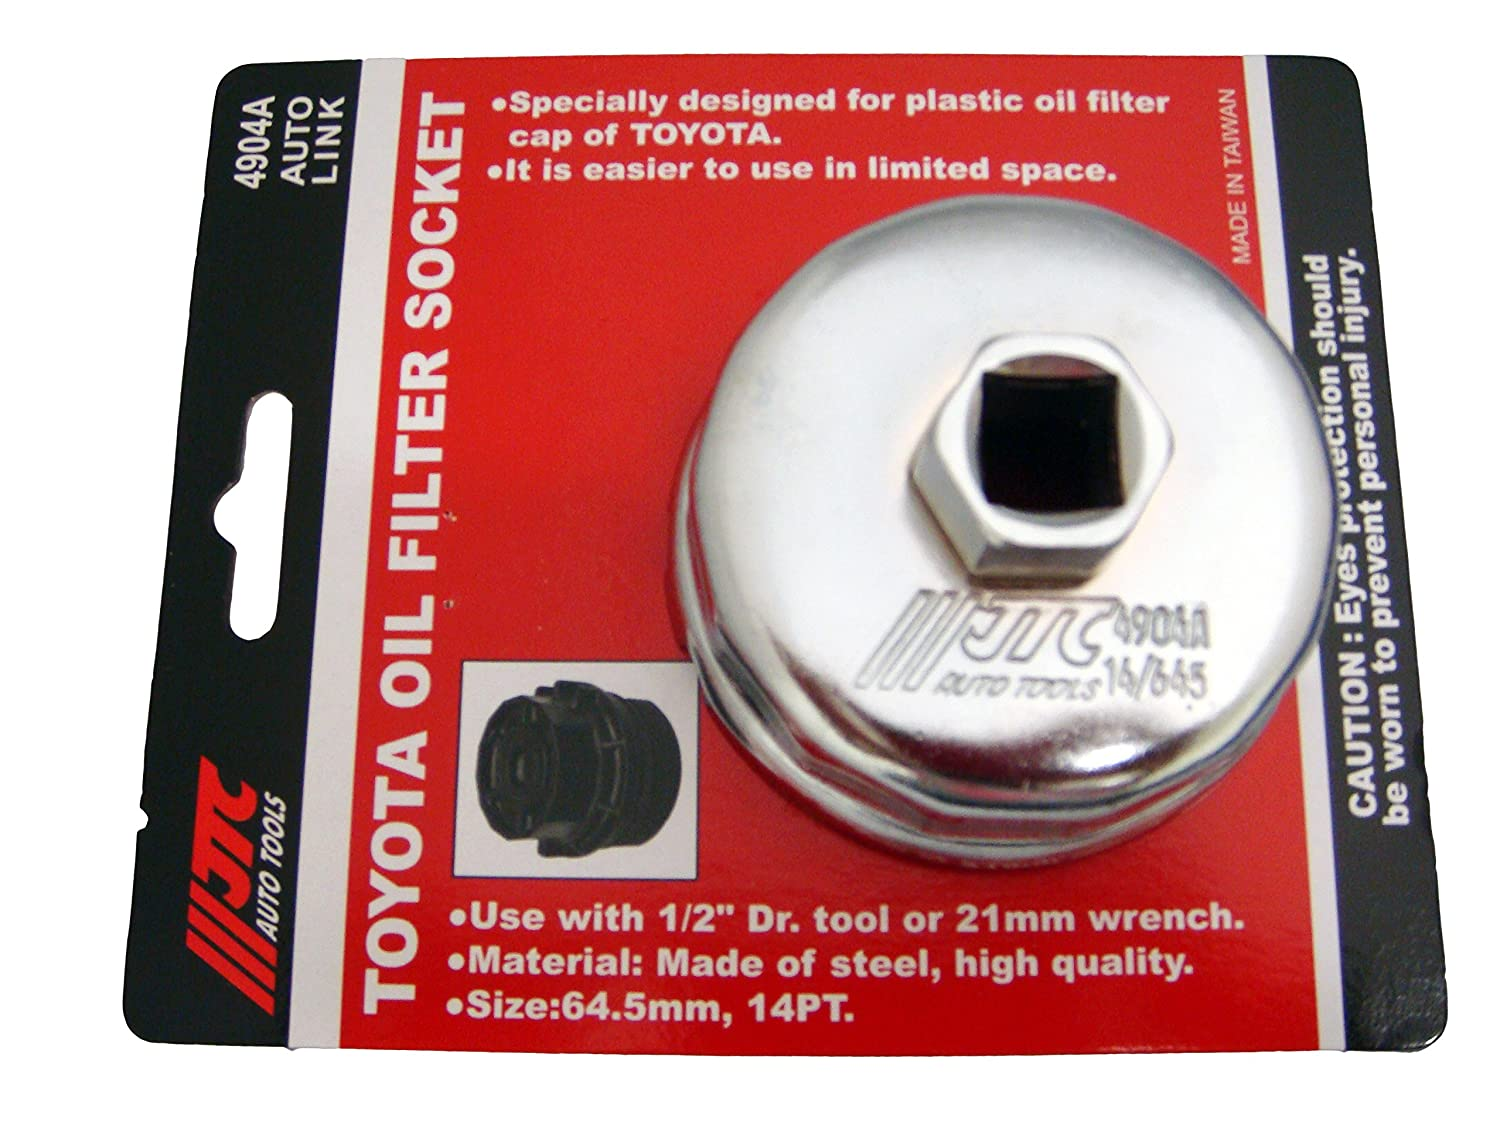 Toyota Oil Filter Socket Wrench Tool 64.5MM 14PT by JTC 4904A